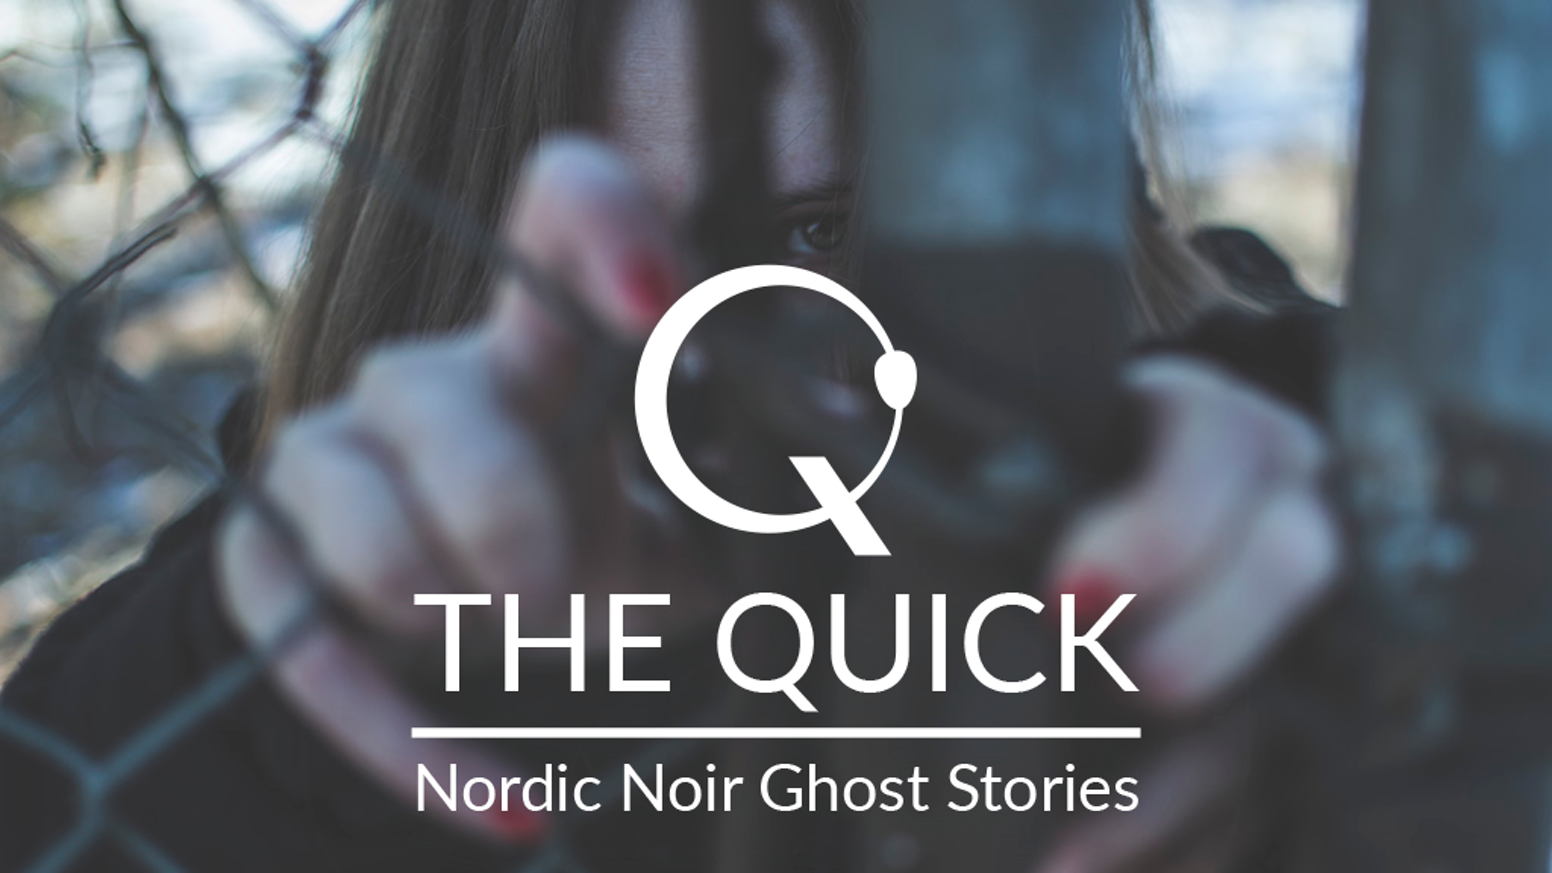 A Role-playing game of death and ghosts in the world of urban fantasy with the distinct atmosphere of Nordic Noir.